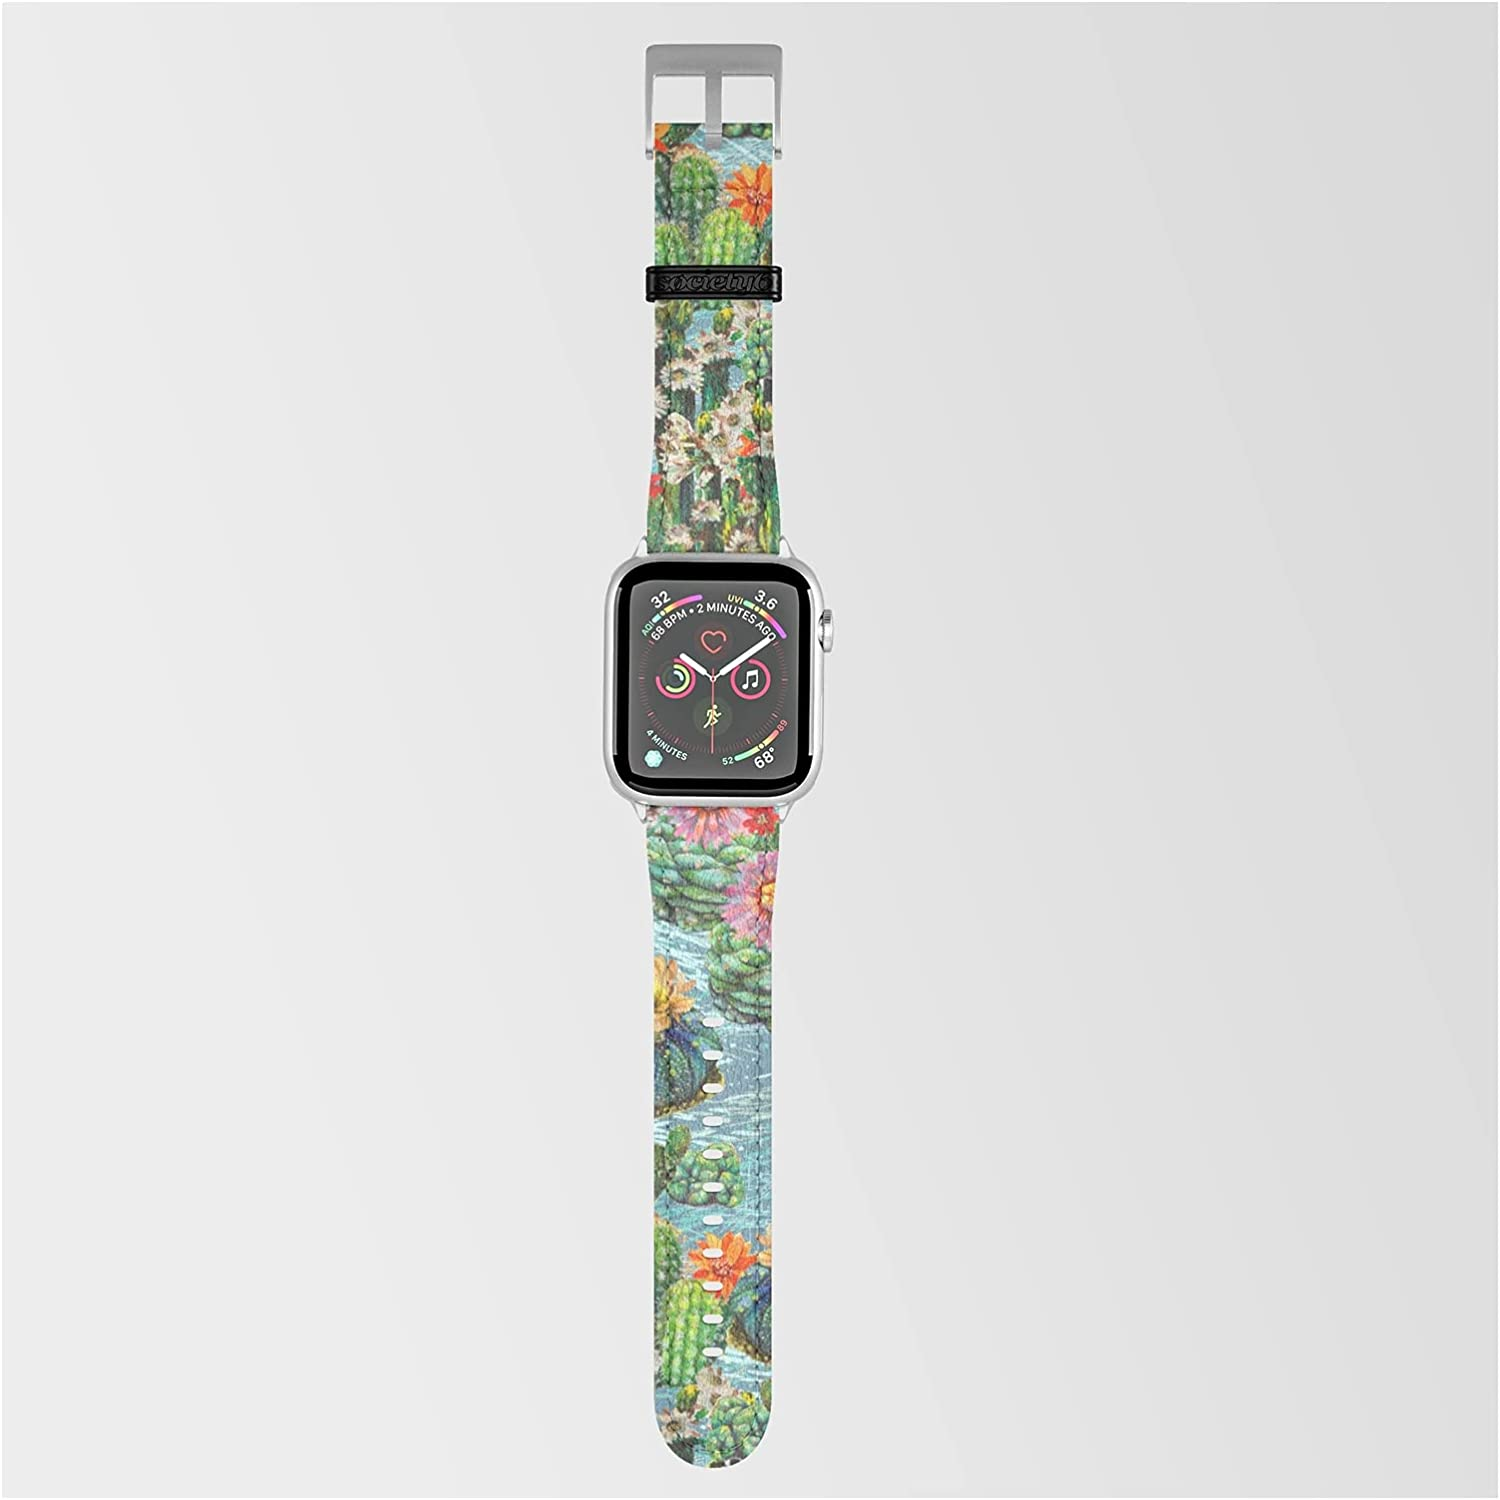 Cactus Now free shipping Desert - BBG by on Smartwatch Janeferwong Now on sale Compatible Band